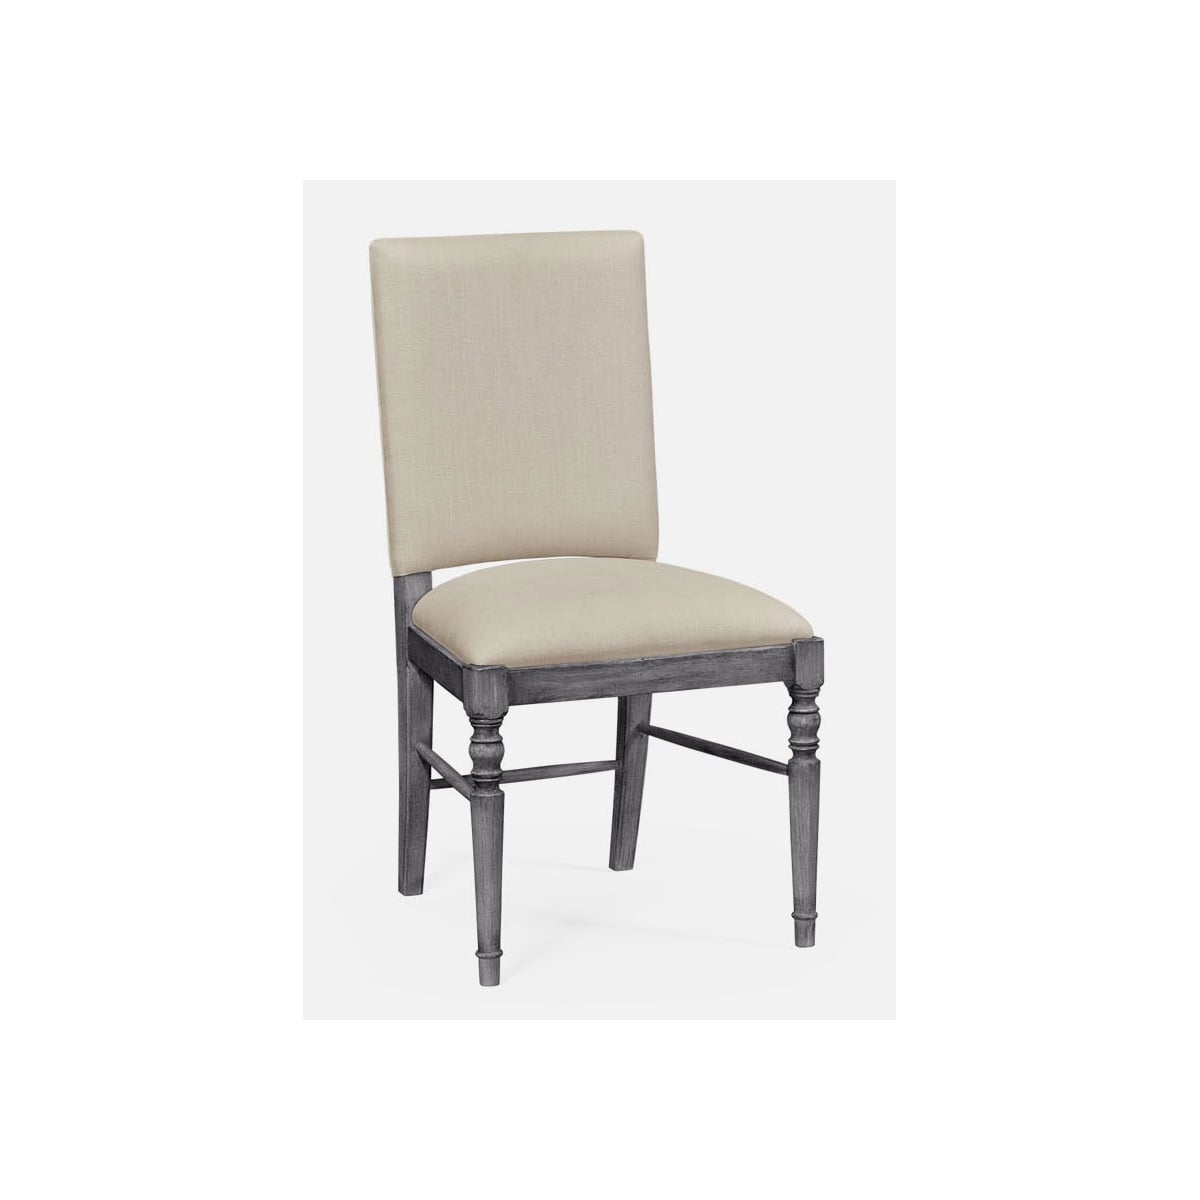 Grey Upholstered Chair Dark Grey Upholstered Dining Chair Swanky Interiors